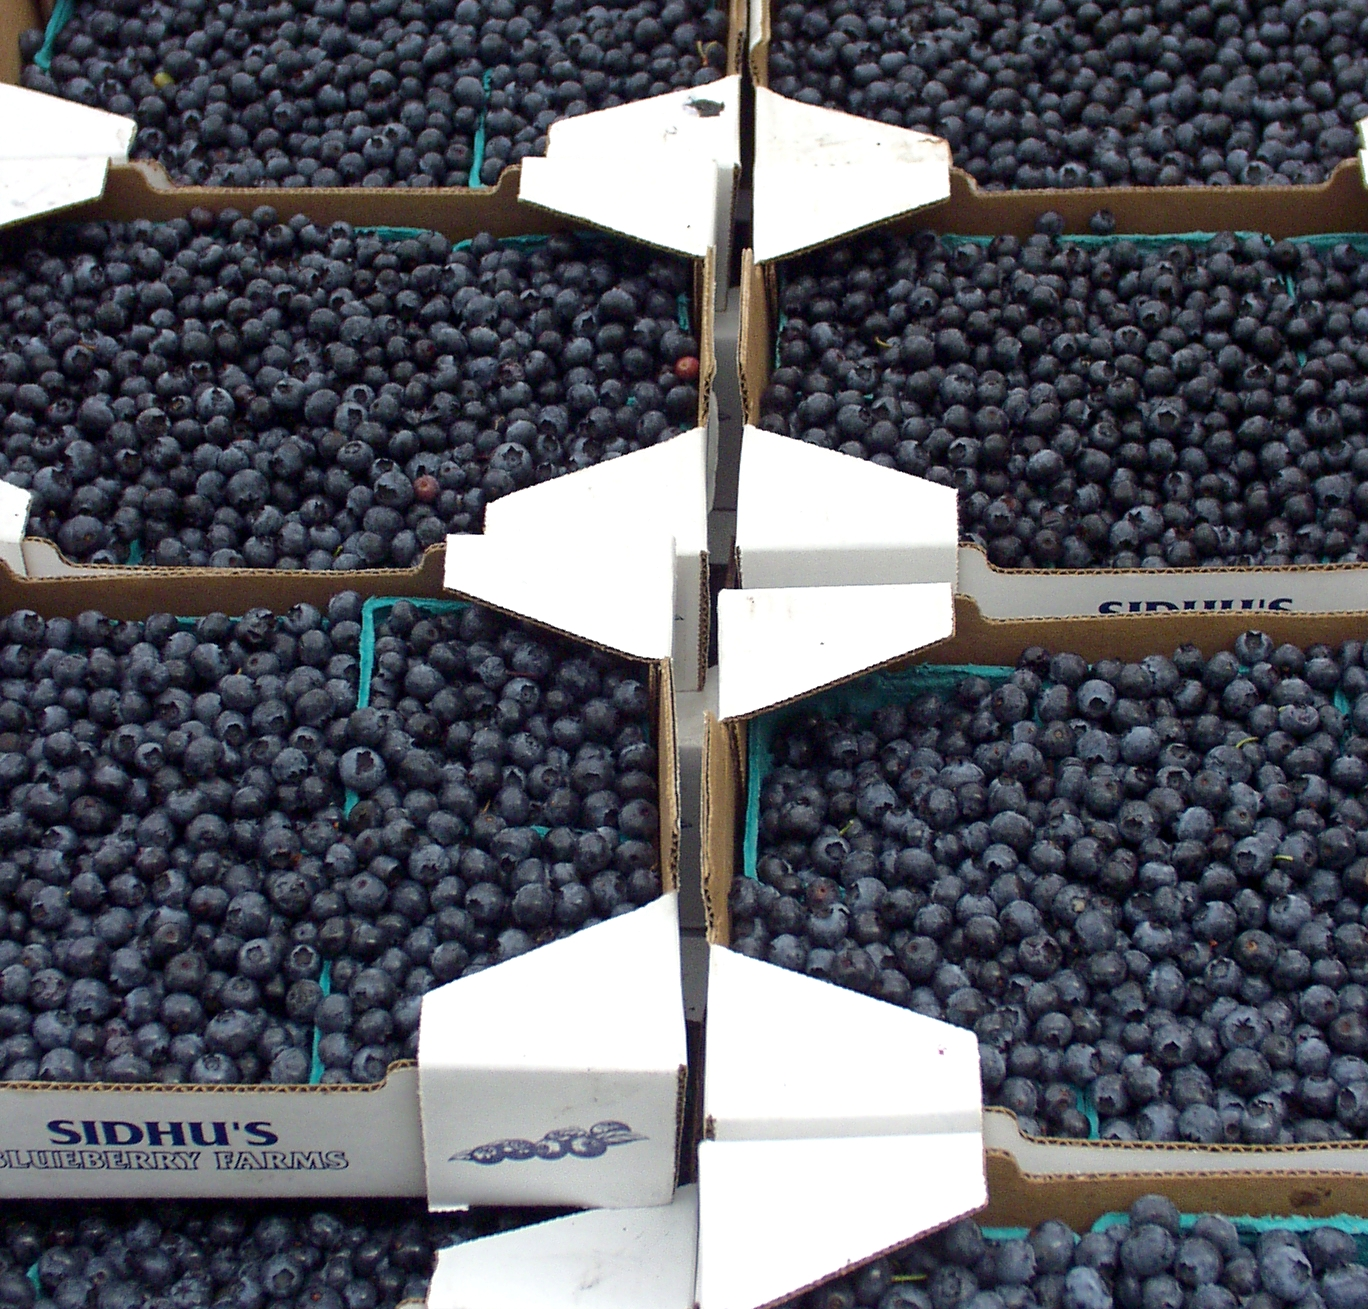 Blueberries from Sidhu Farms. Photo copyright 2009 by Zachary D. Lyons.